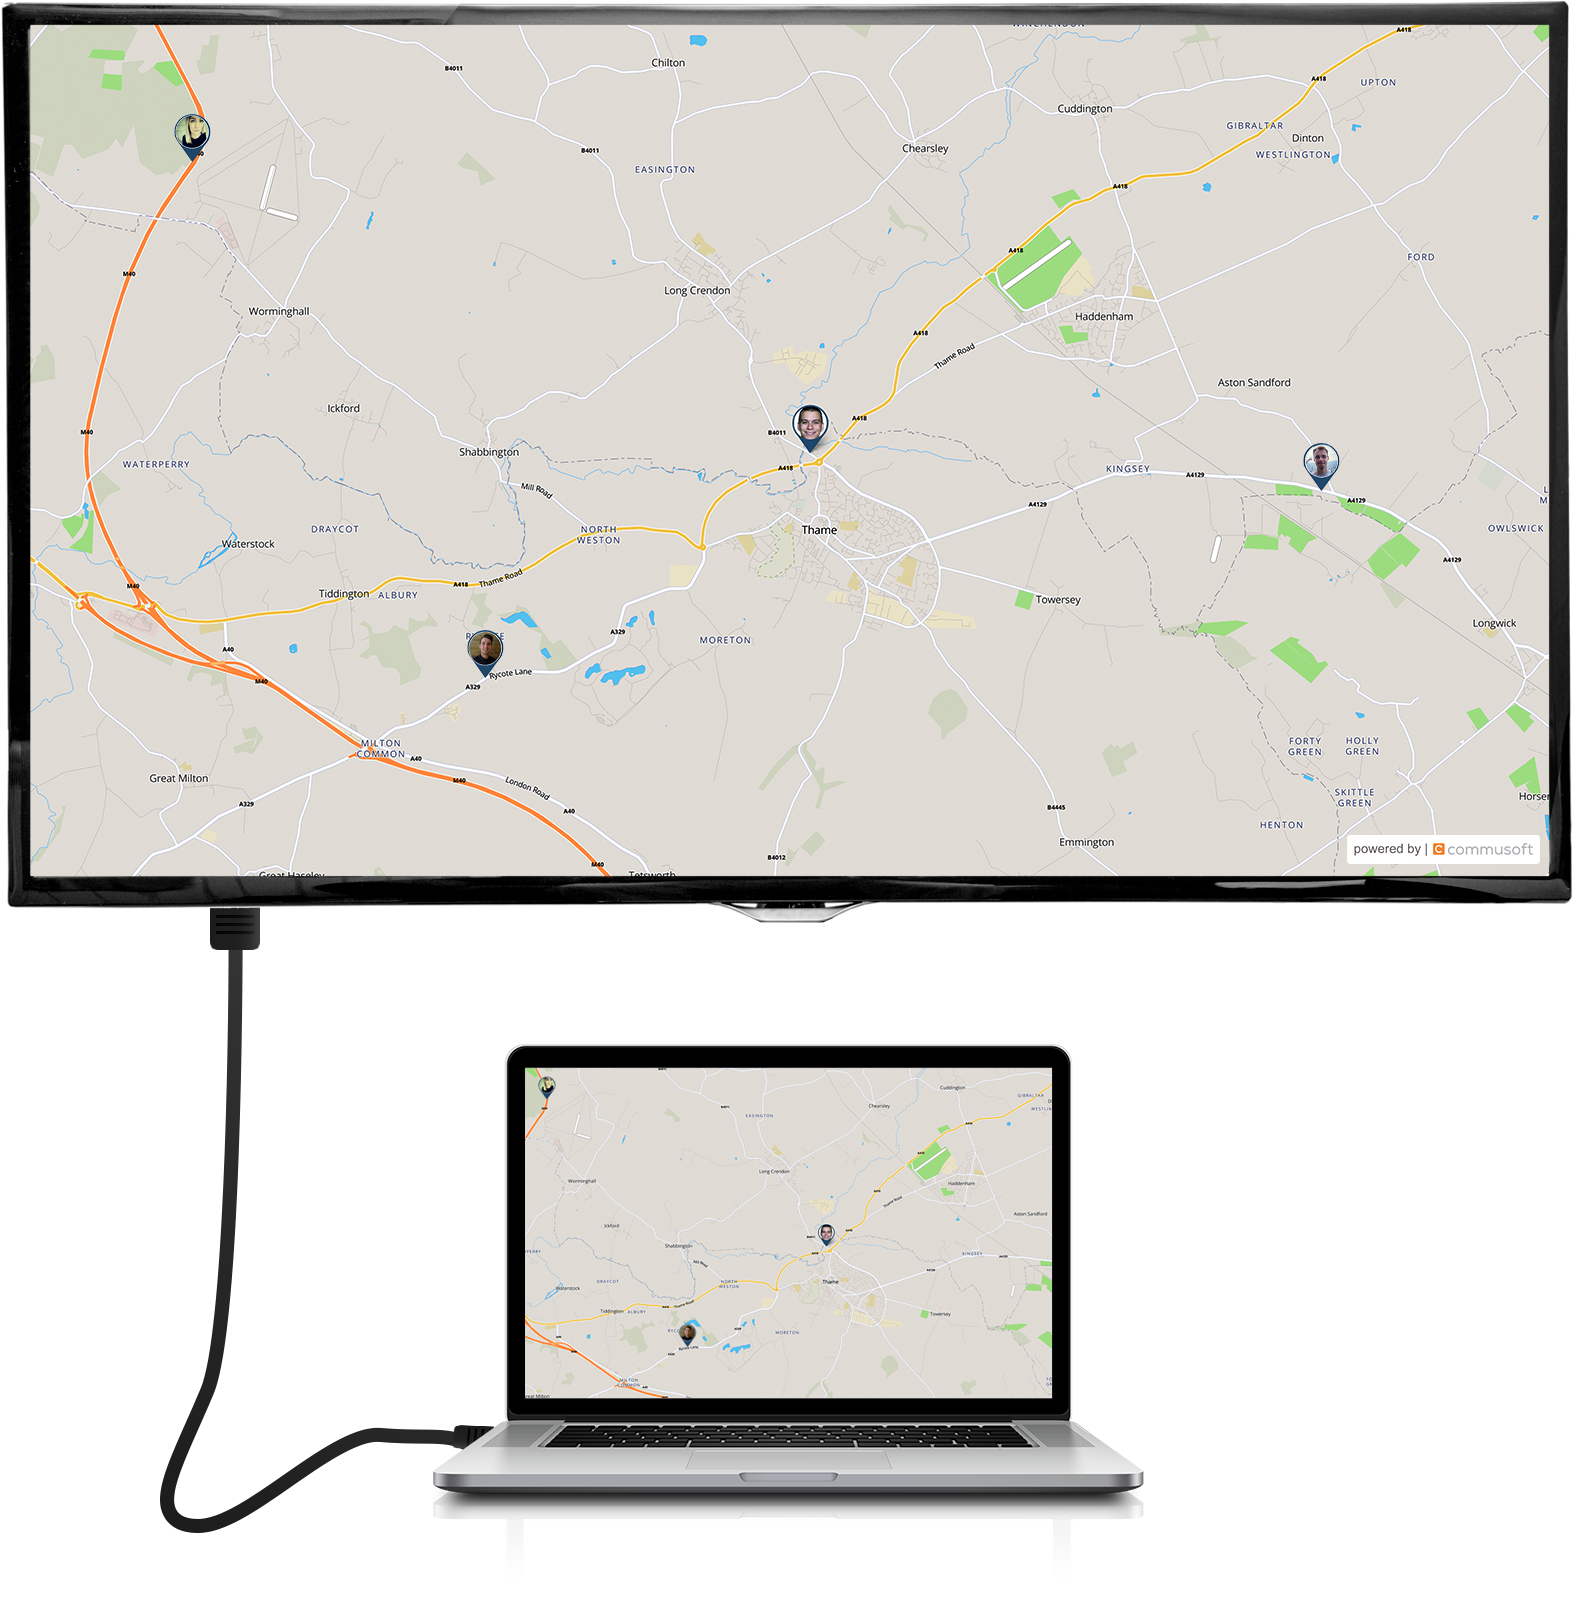 Vehicle tracking extended display